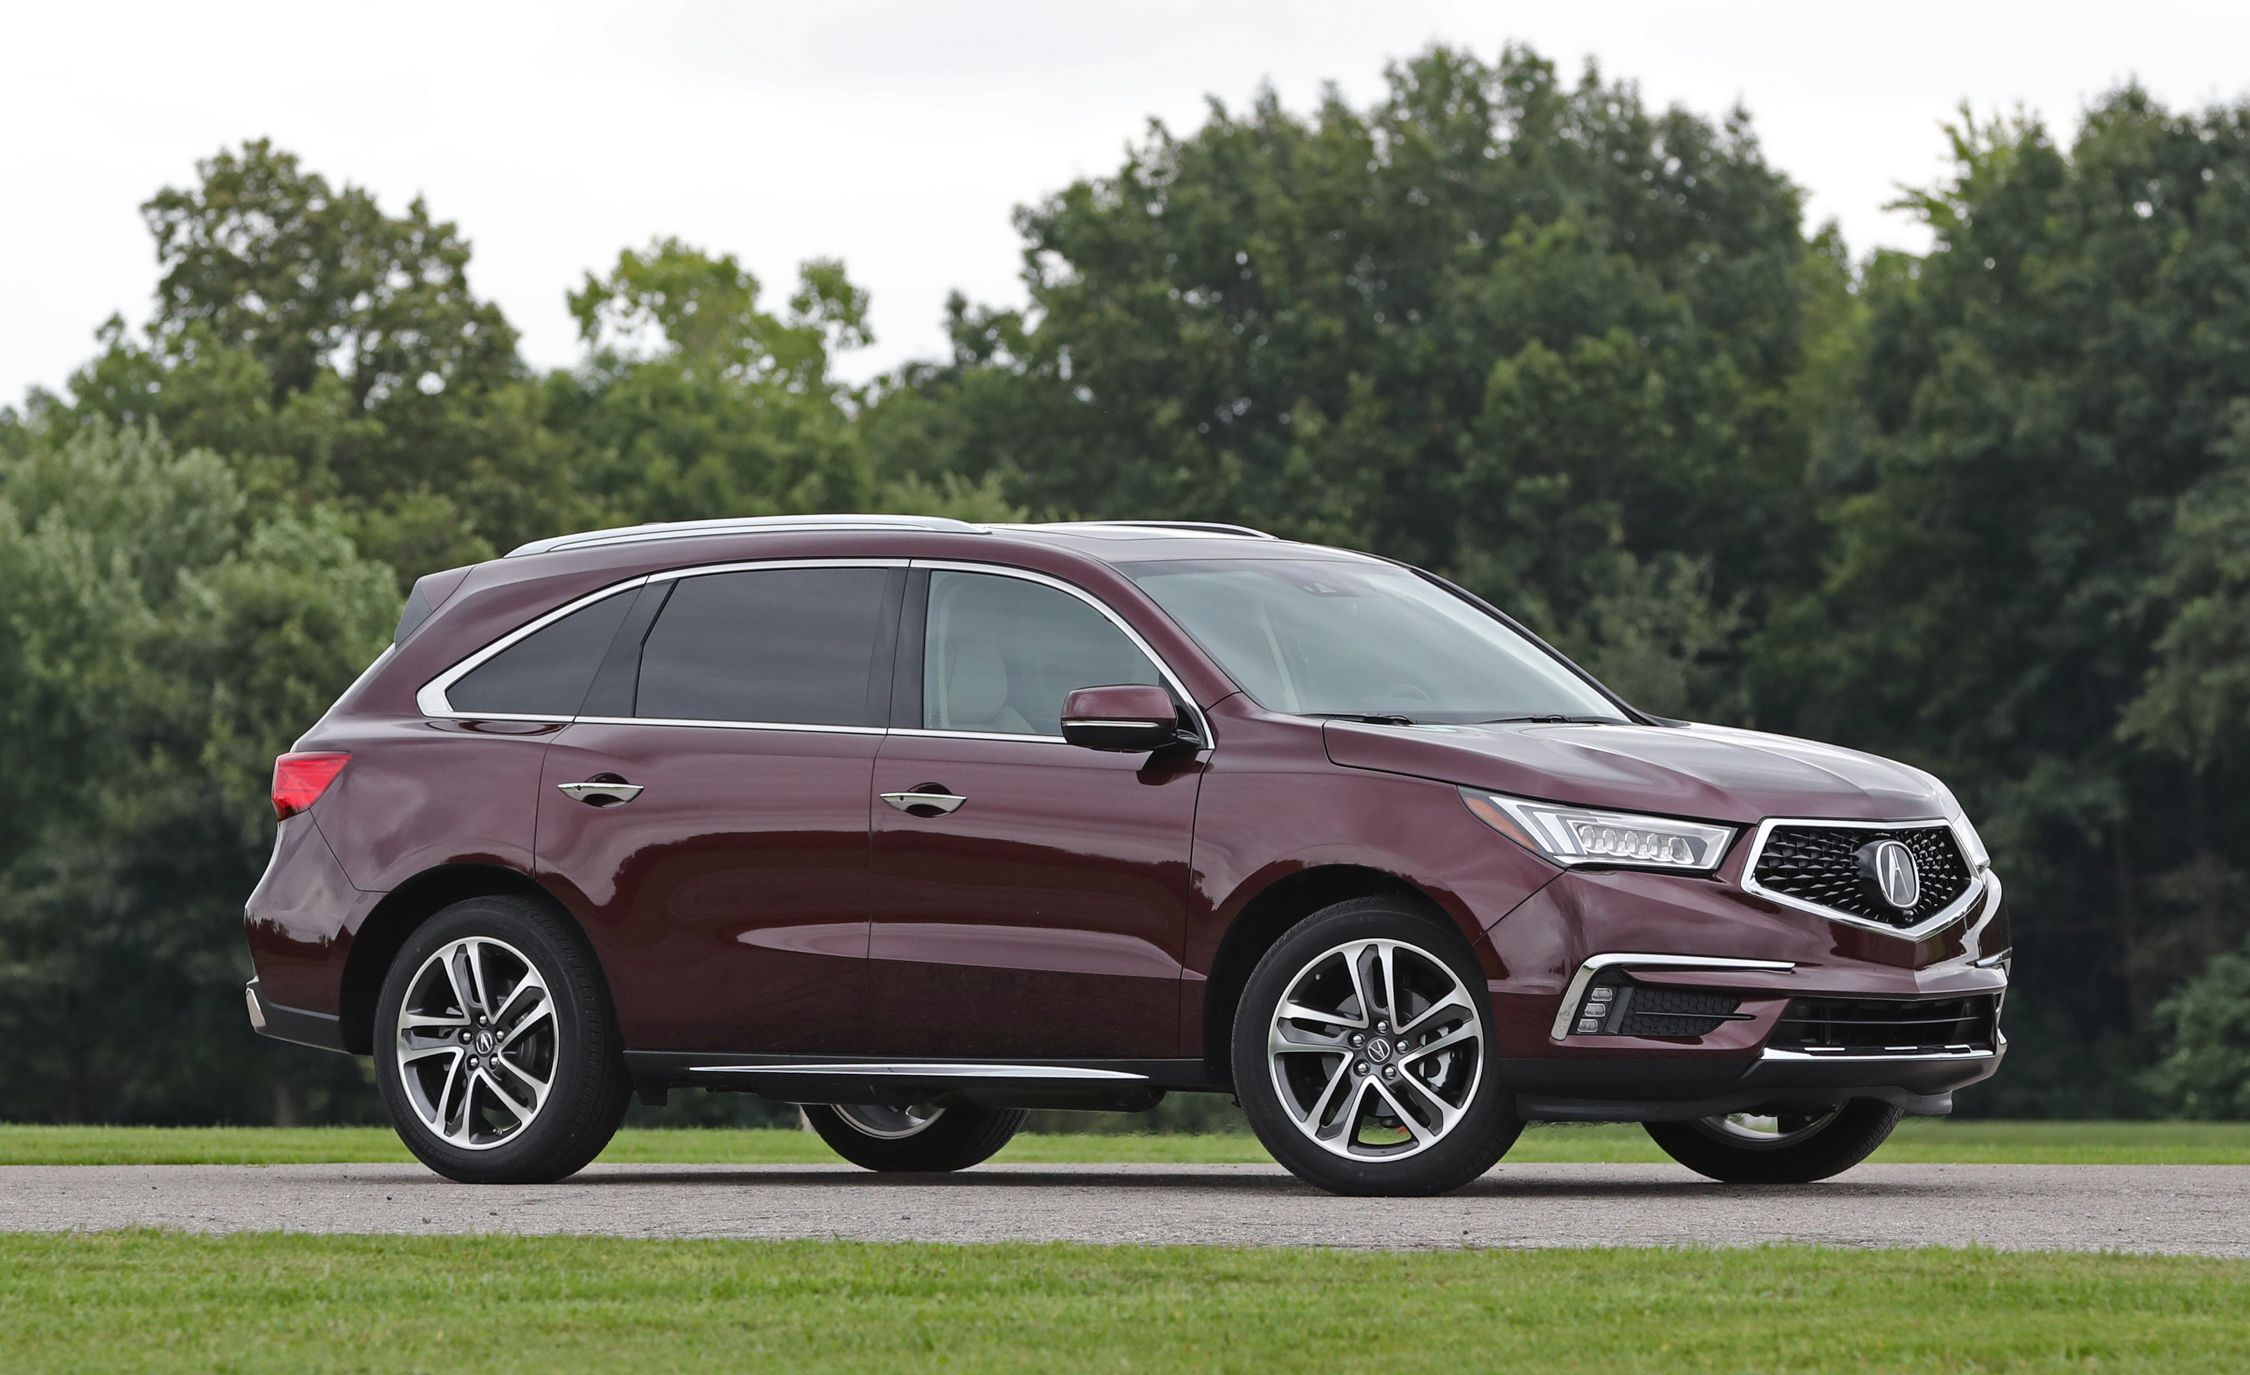 2018 Acura Mdx Exterior Design And Dimensions Review Car And Driver